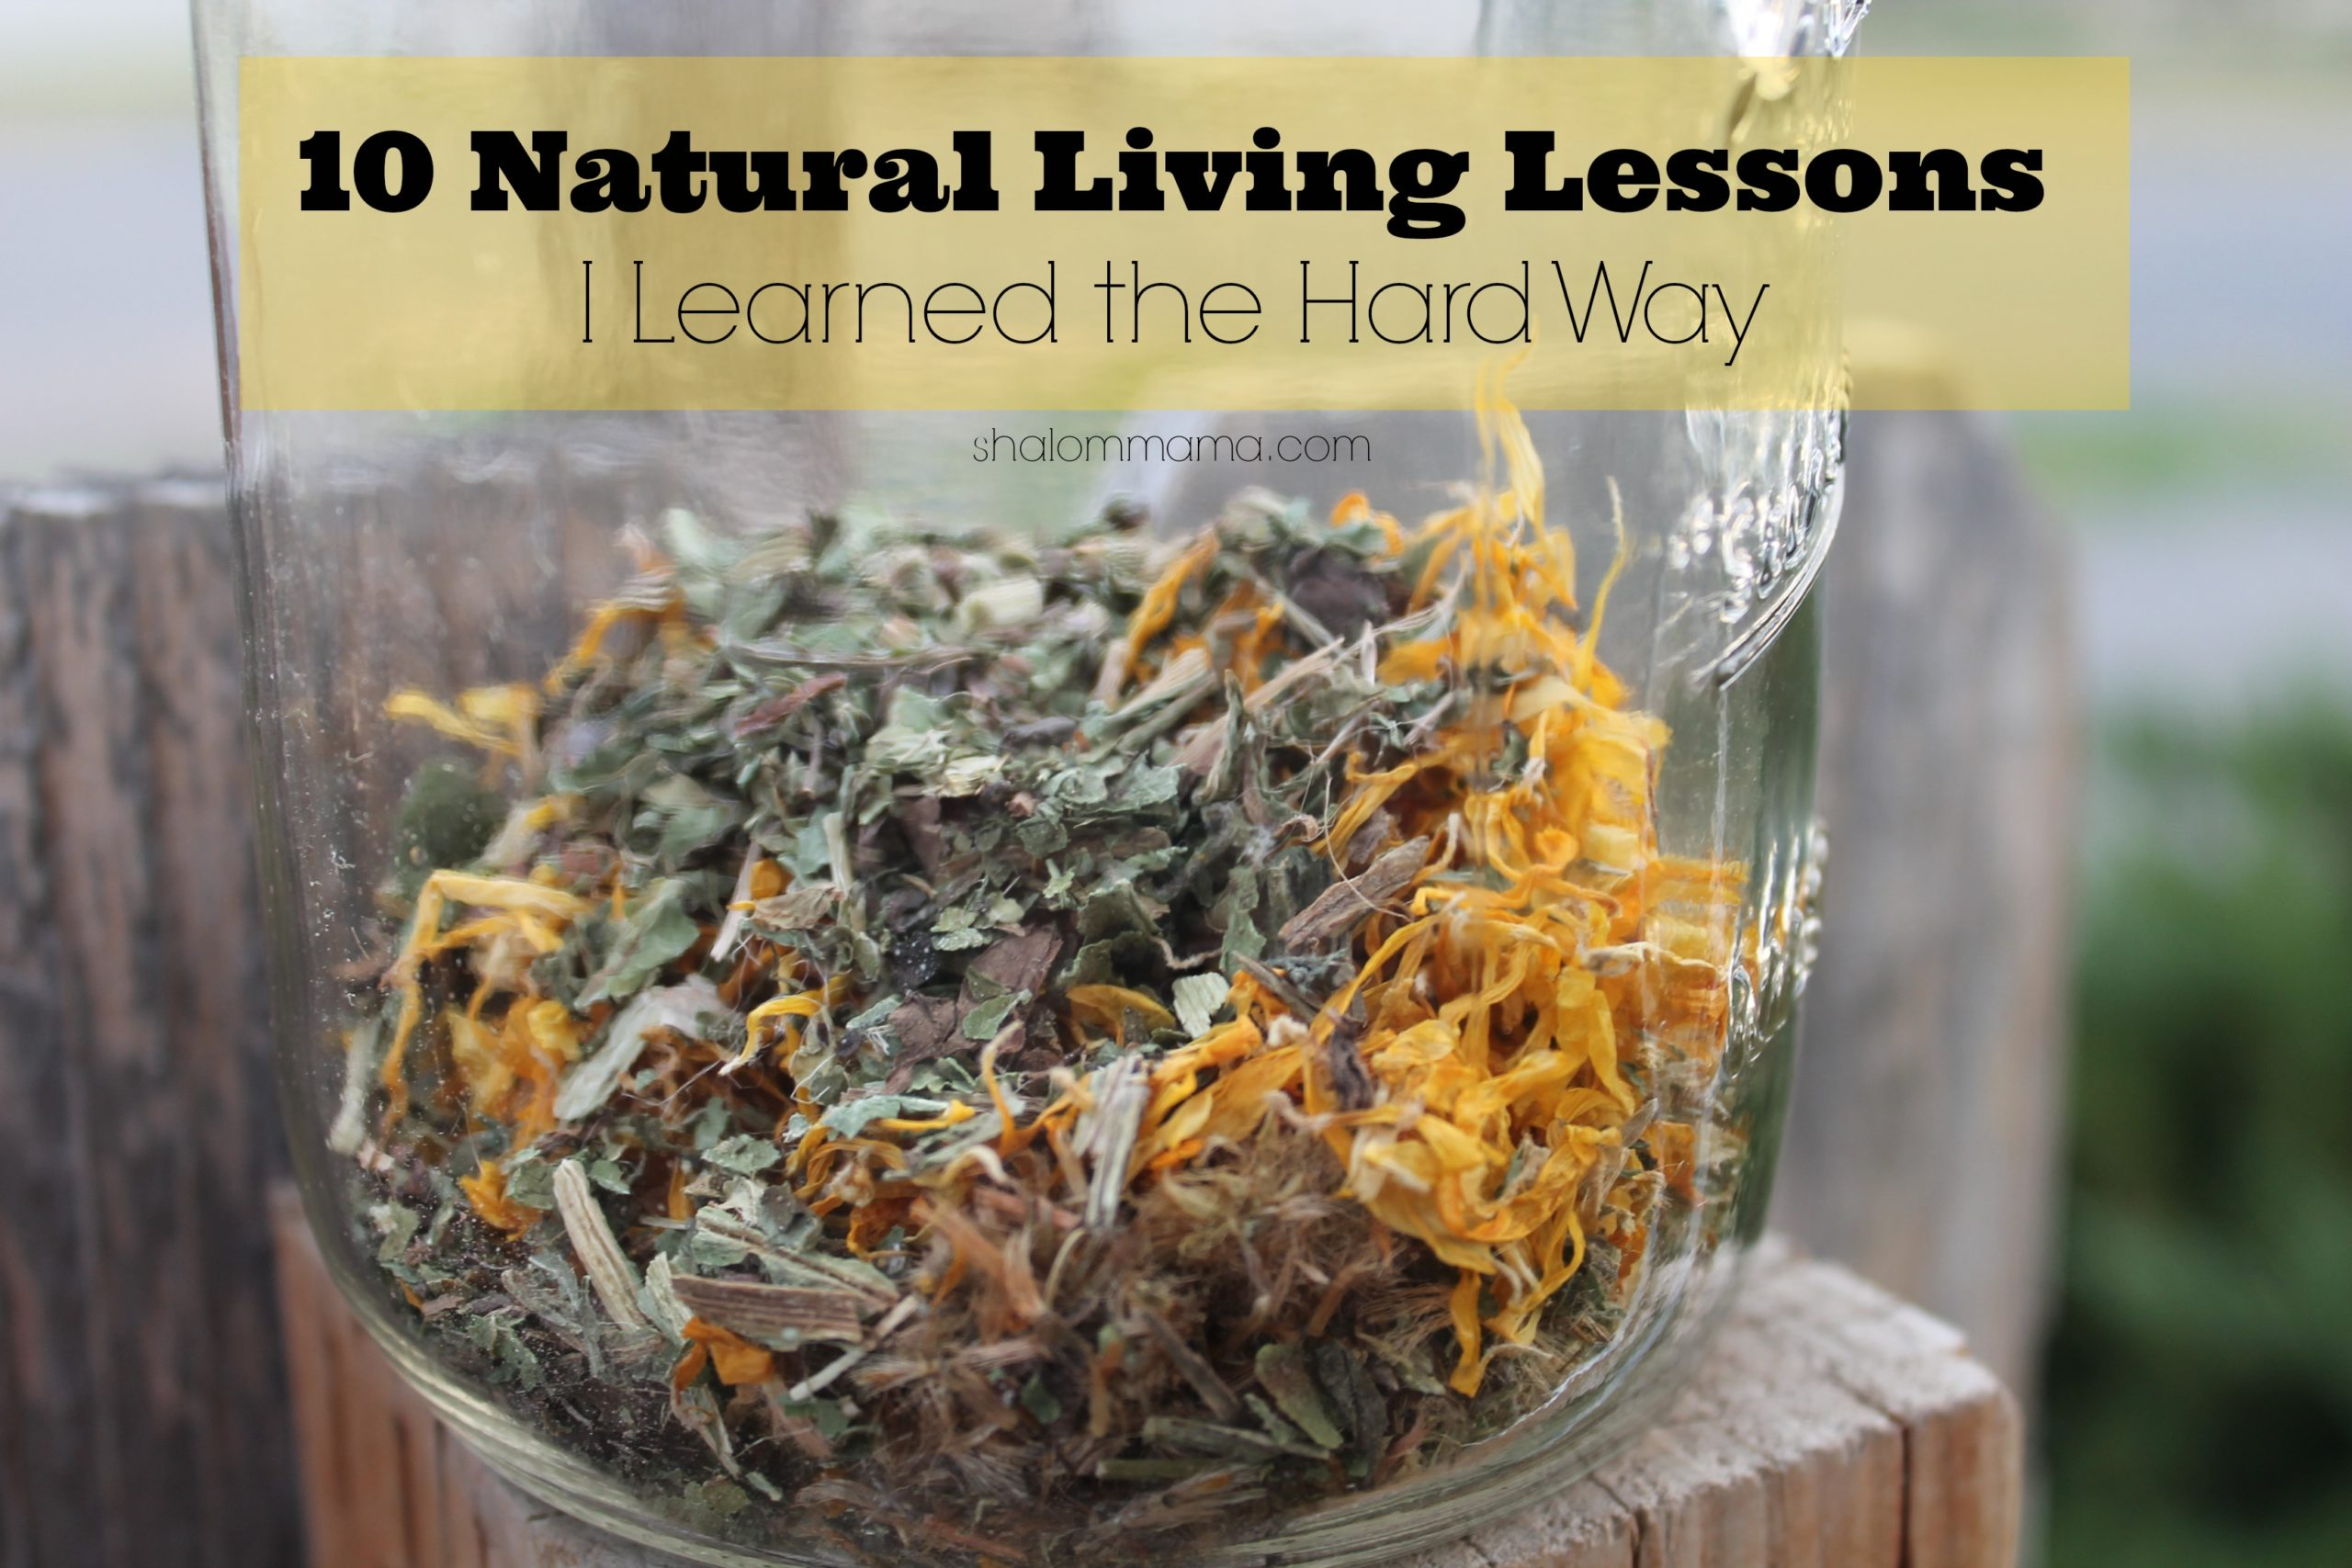 10 Natural Living Lessons I Learned the Hard Way